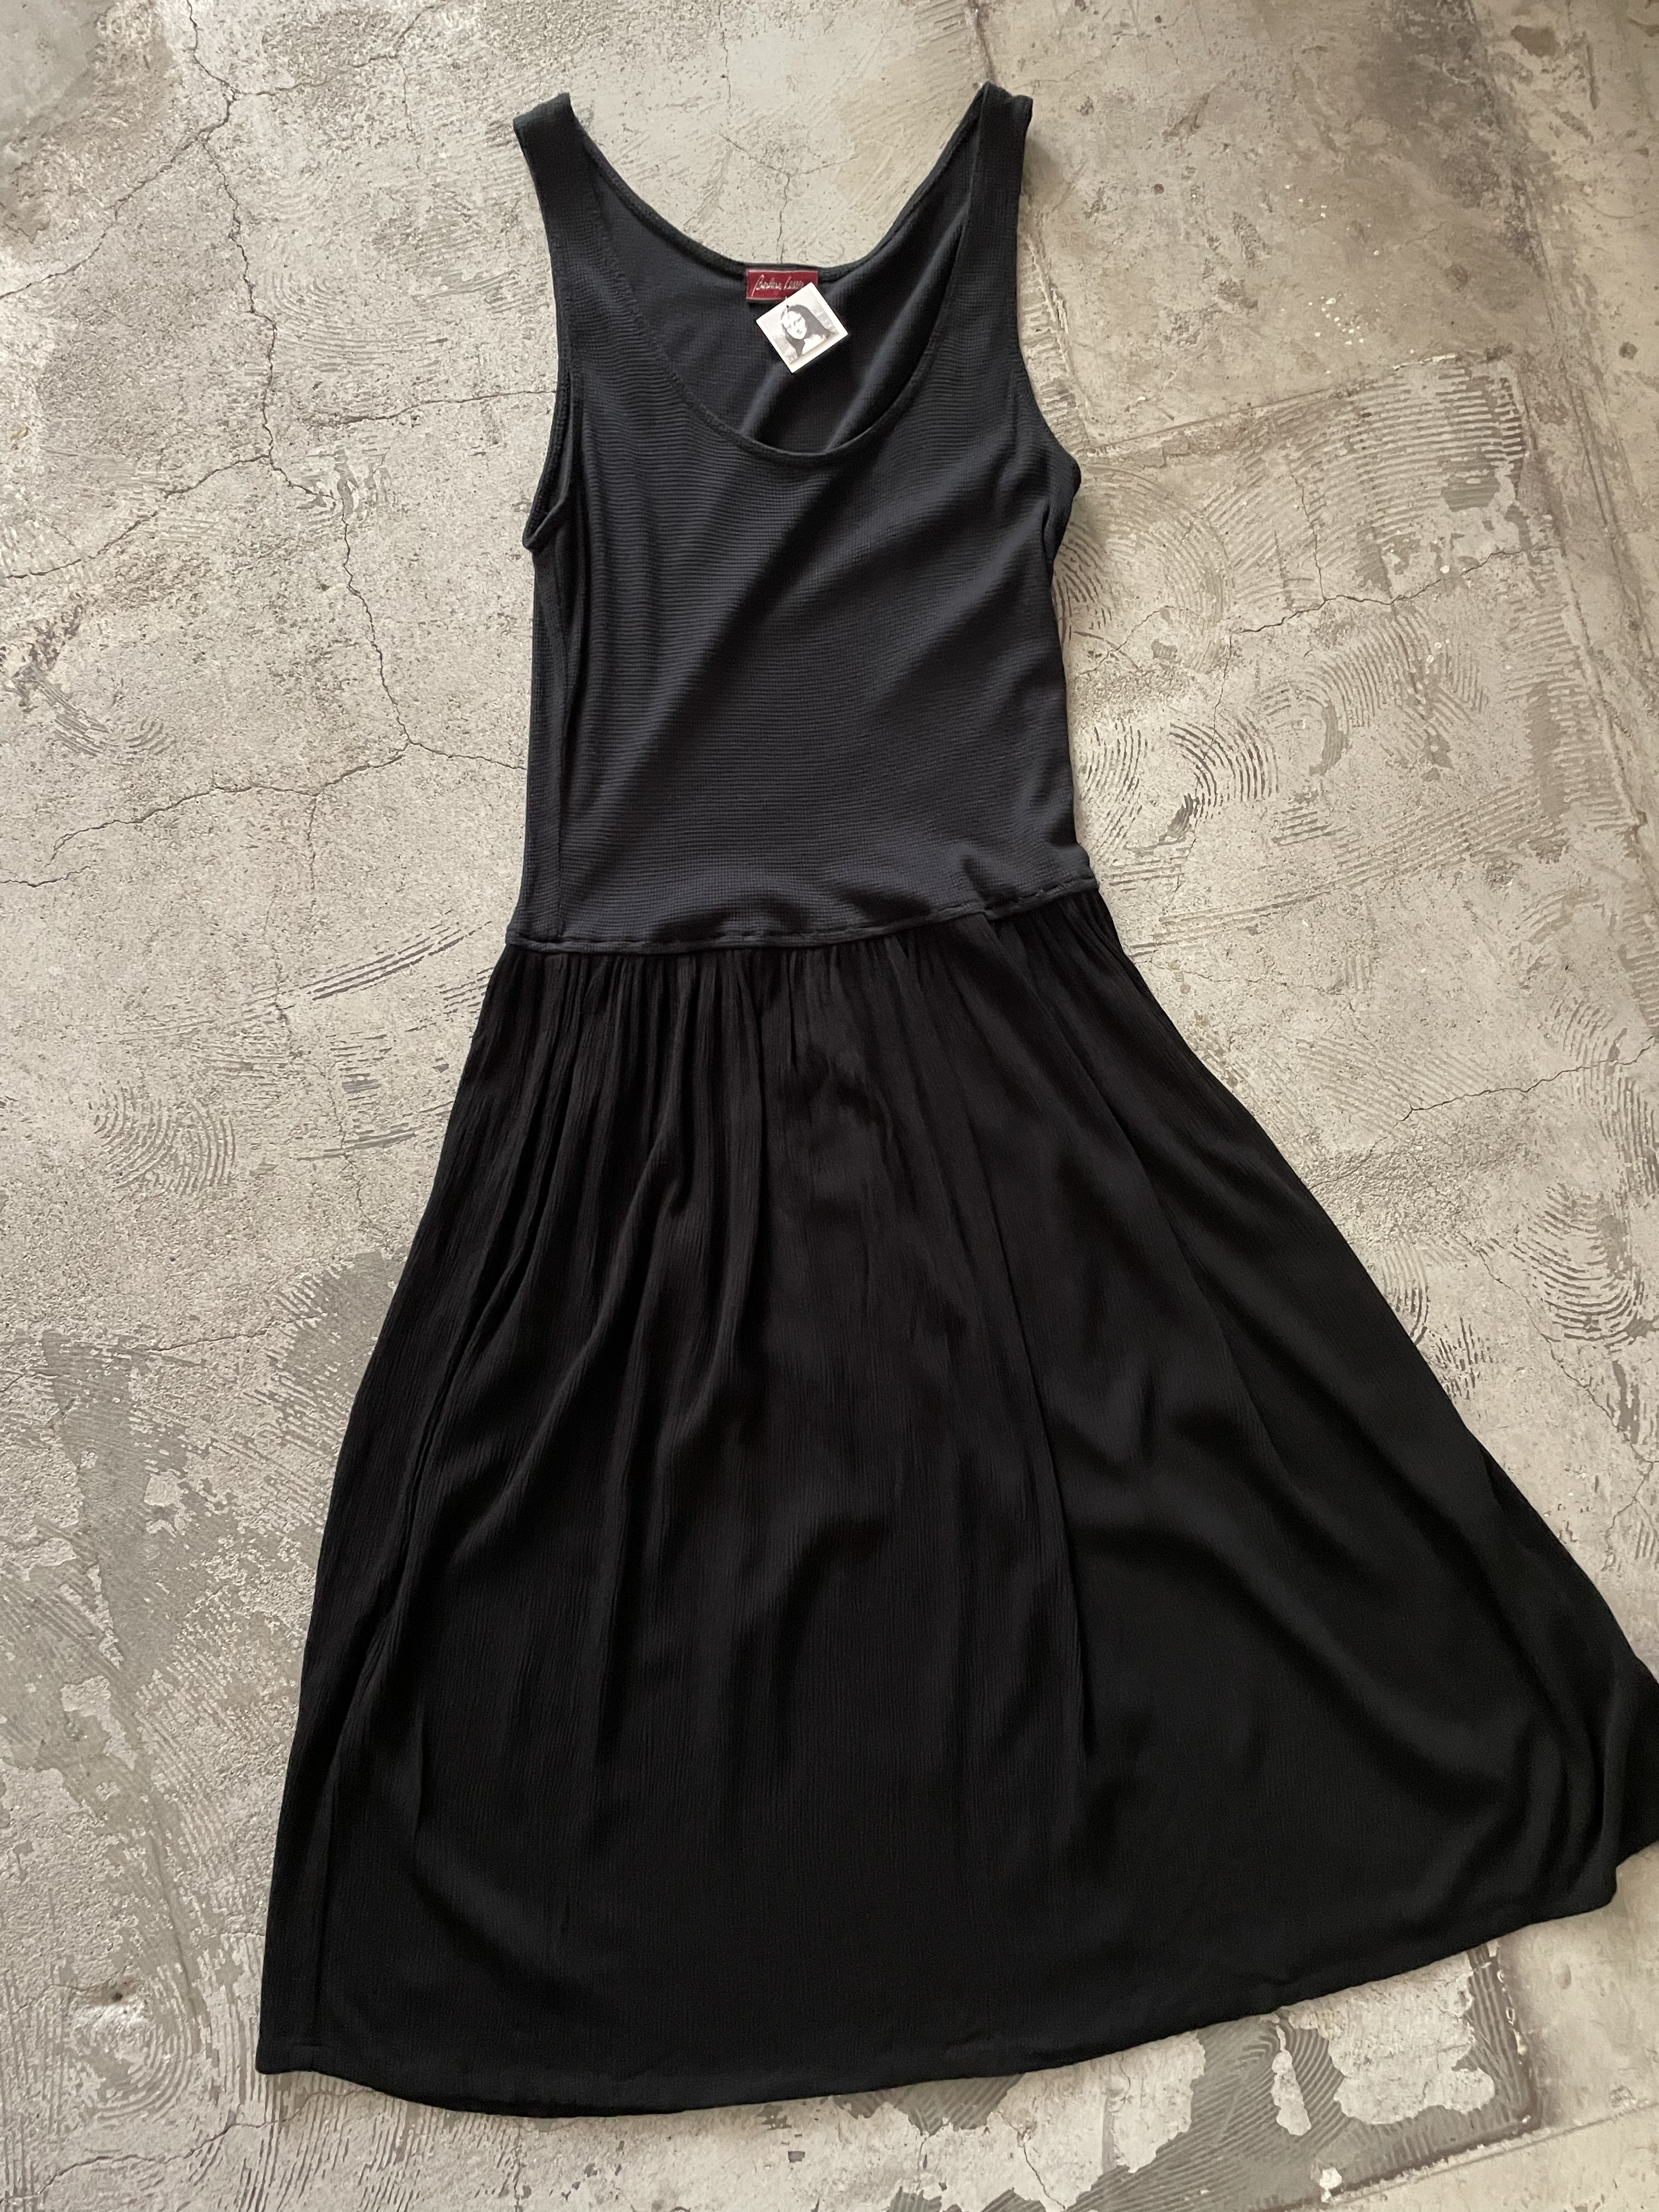 made in USA vintage thermal dress